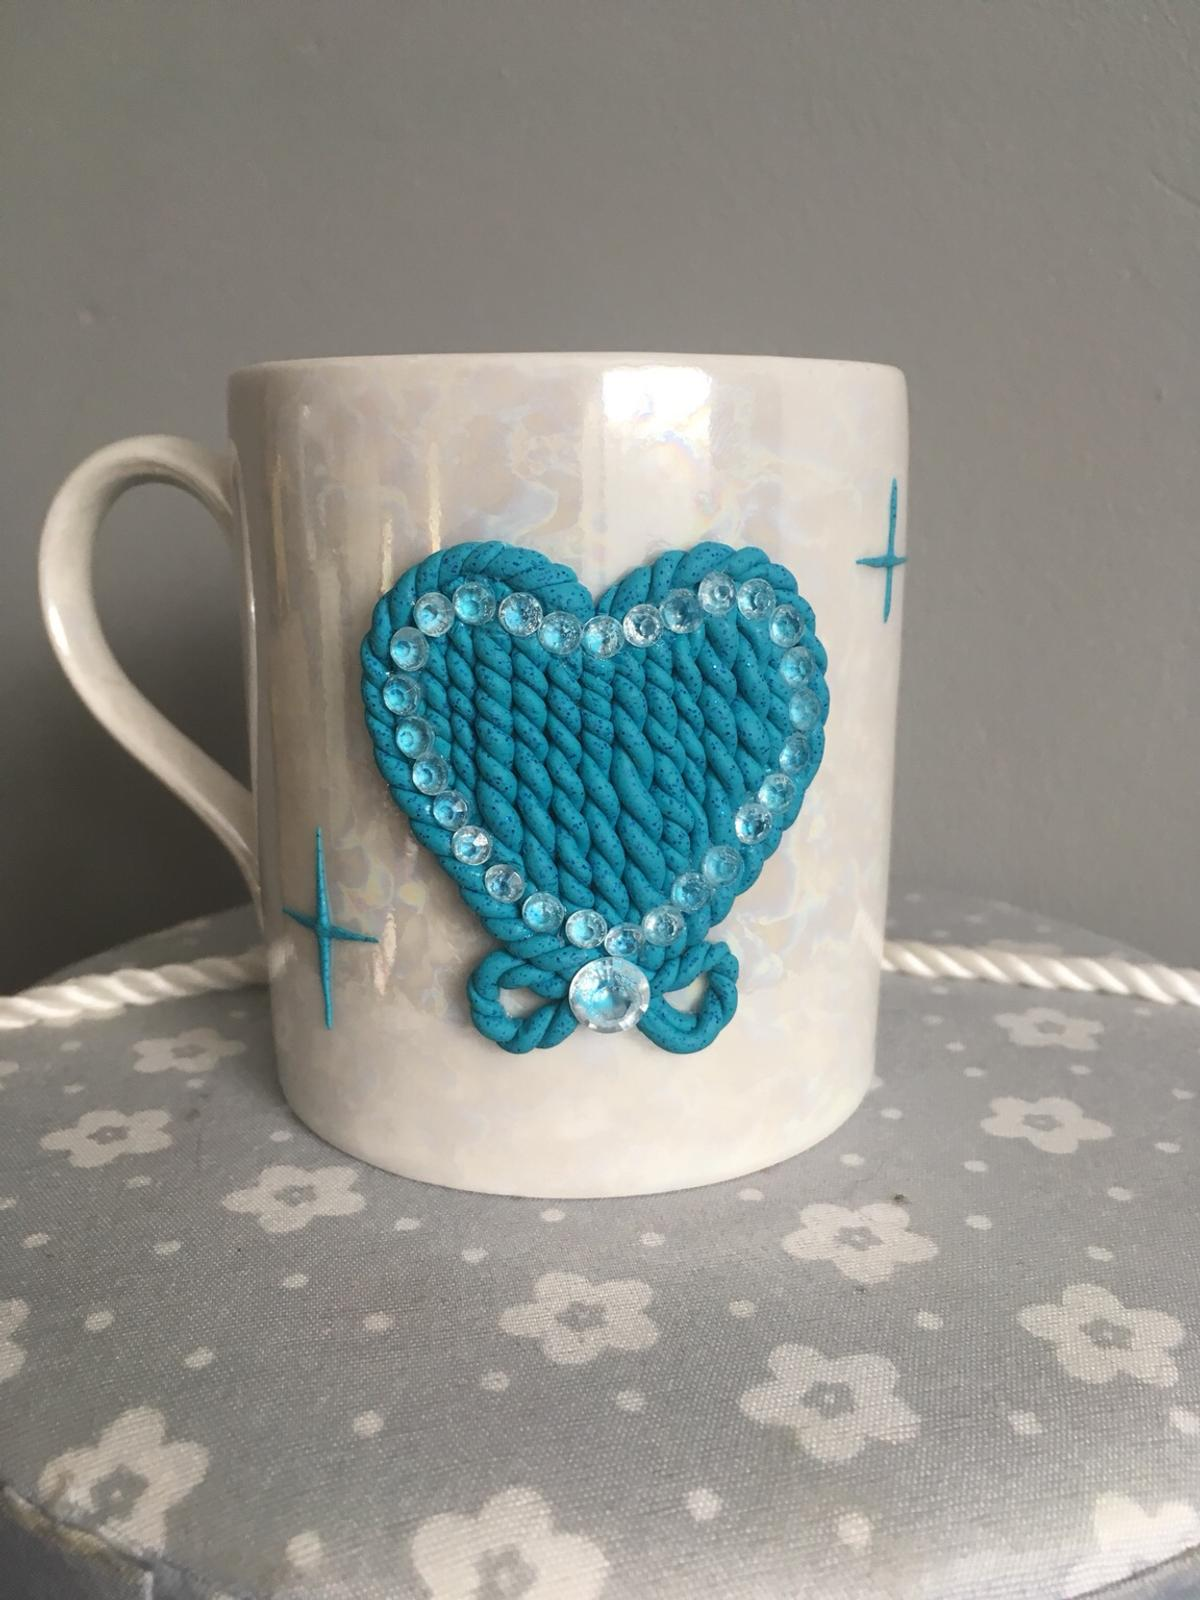 Polymer Clay Heart Tea Cup In Me15 Maidstone For 15 00 For Sale Shpock